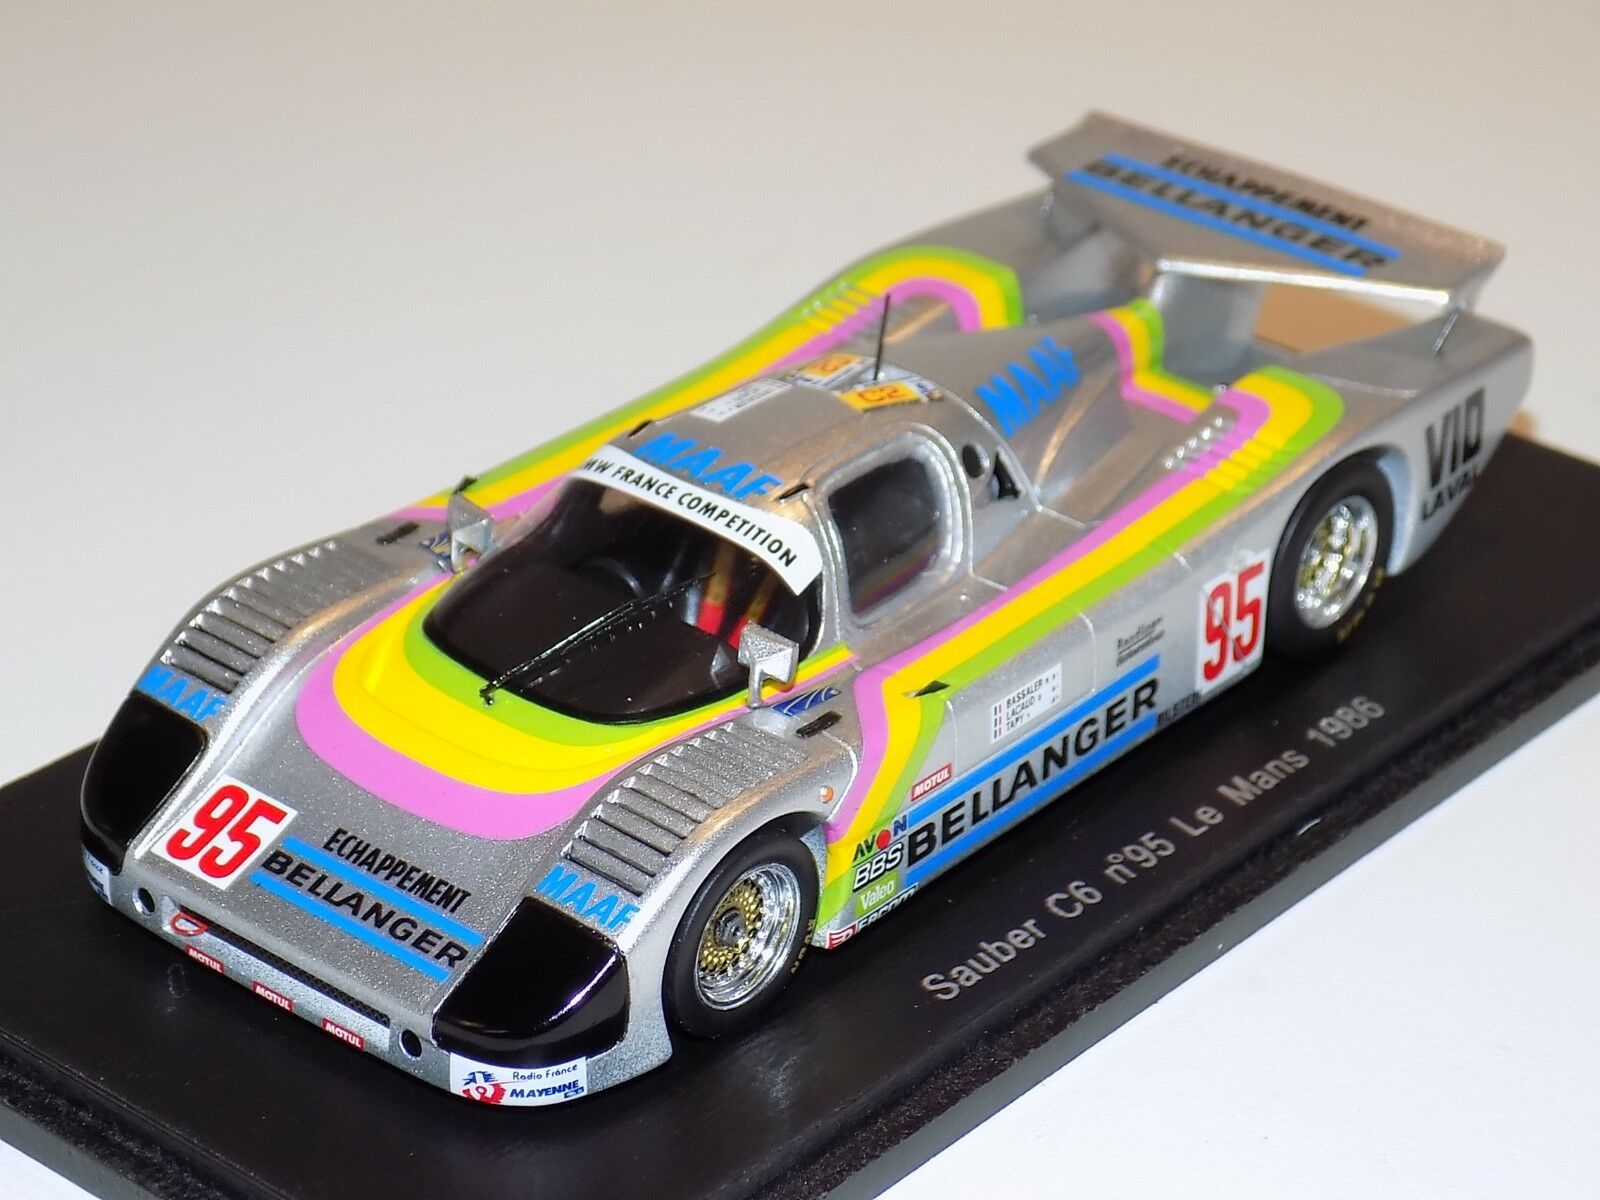 1/43 Spark Sauber Sauber Sauber C6  car  6 1986 24 Hours of LeMans S4081 8f011e